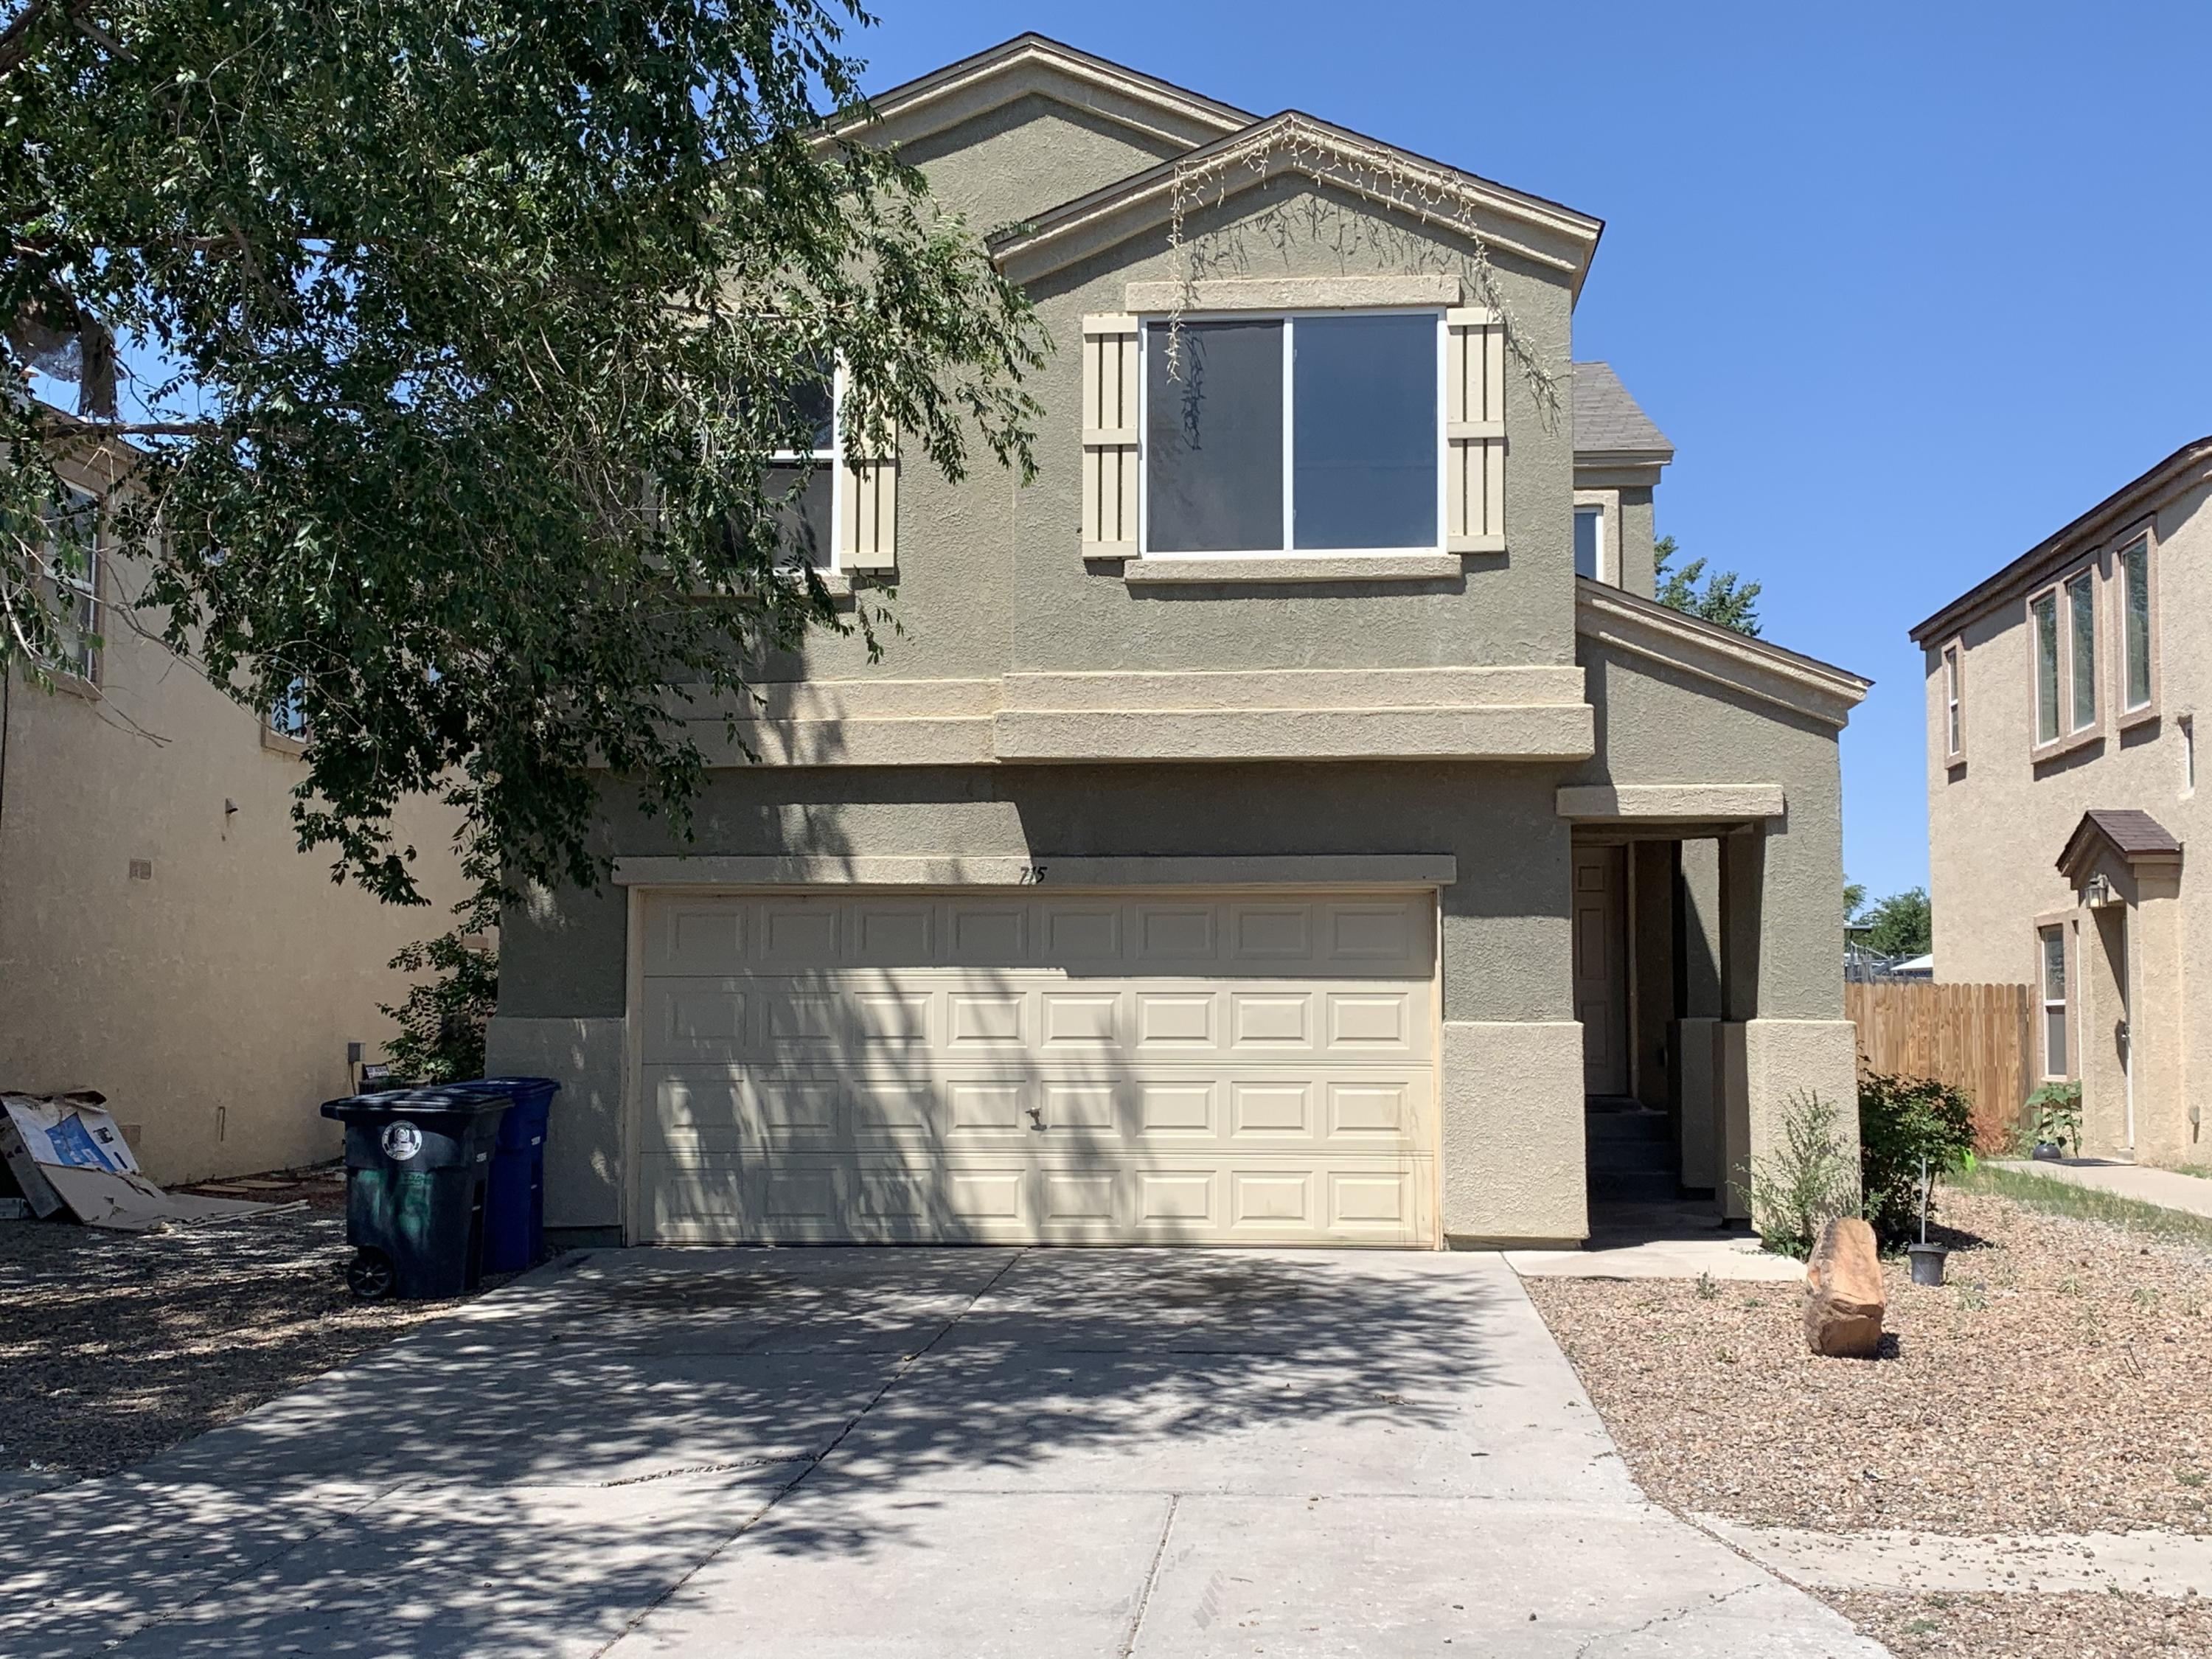 Lots of space for the money!  Almost 2000 sq.ft., 4/br, plus loft, 2.5/ba, w/2 car garage.  All bedrooms upstairs.  Living, dining, kitchen and 1/2 bath down.  Spacious master bedroom features nice full bath w/garden tub, double sinks and SUPER SIZED walkin closet.   Informal/formal dining room.  Small loft area great for computer room, play room or just about anything.